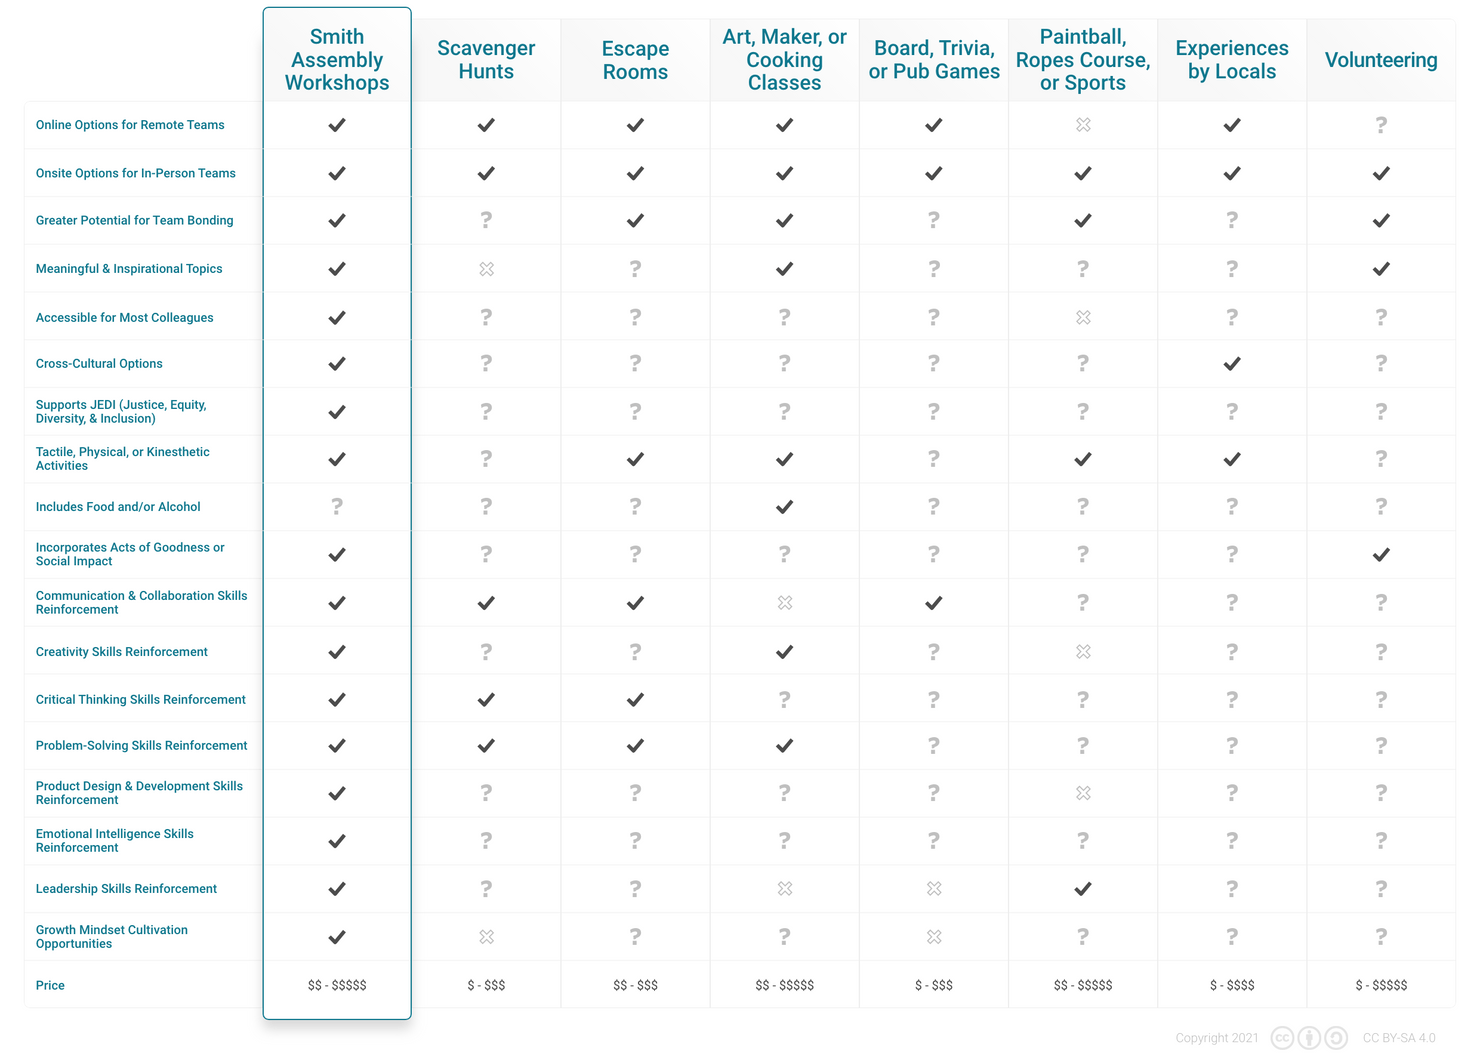 a comparison table of team building activities for features like online options, meaning and inspiration, accessibility, diversity and inclusion, social impact, and price